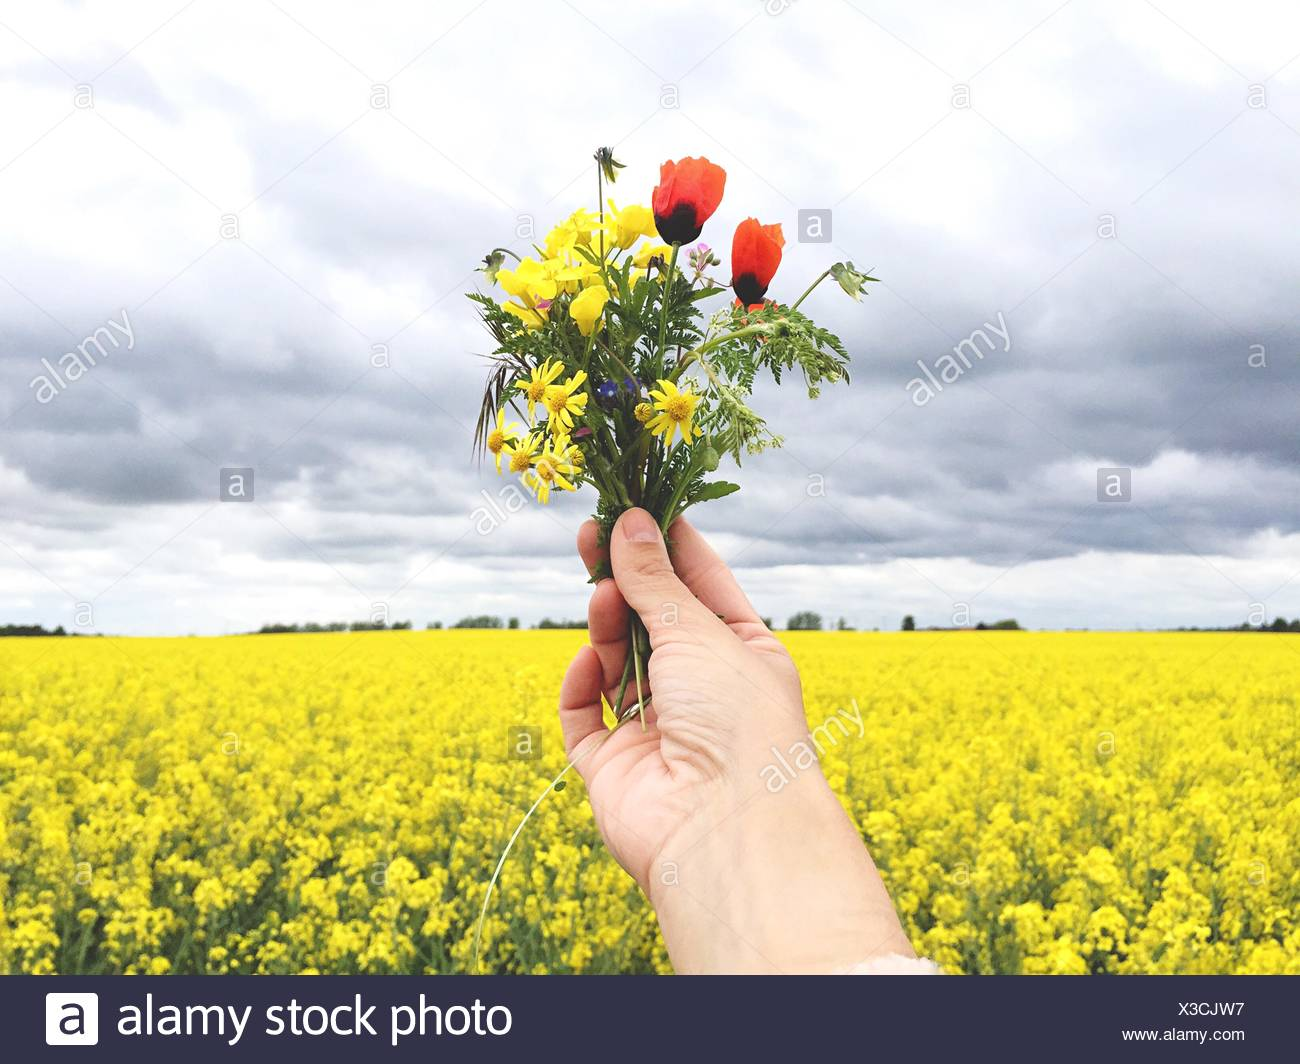 Cropped Hand Holding Multi Colored Flowers Against Raps Field - Stock Image